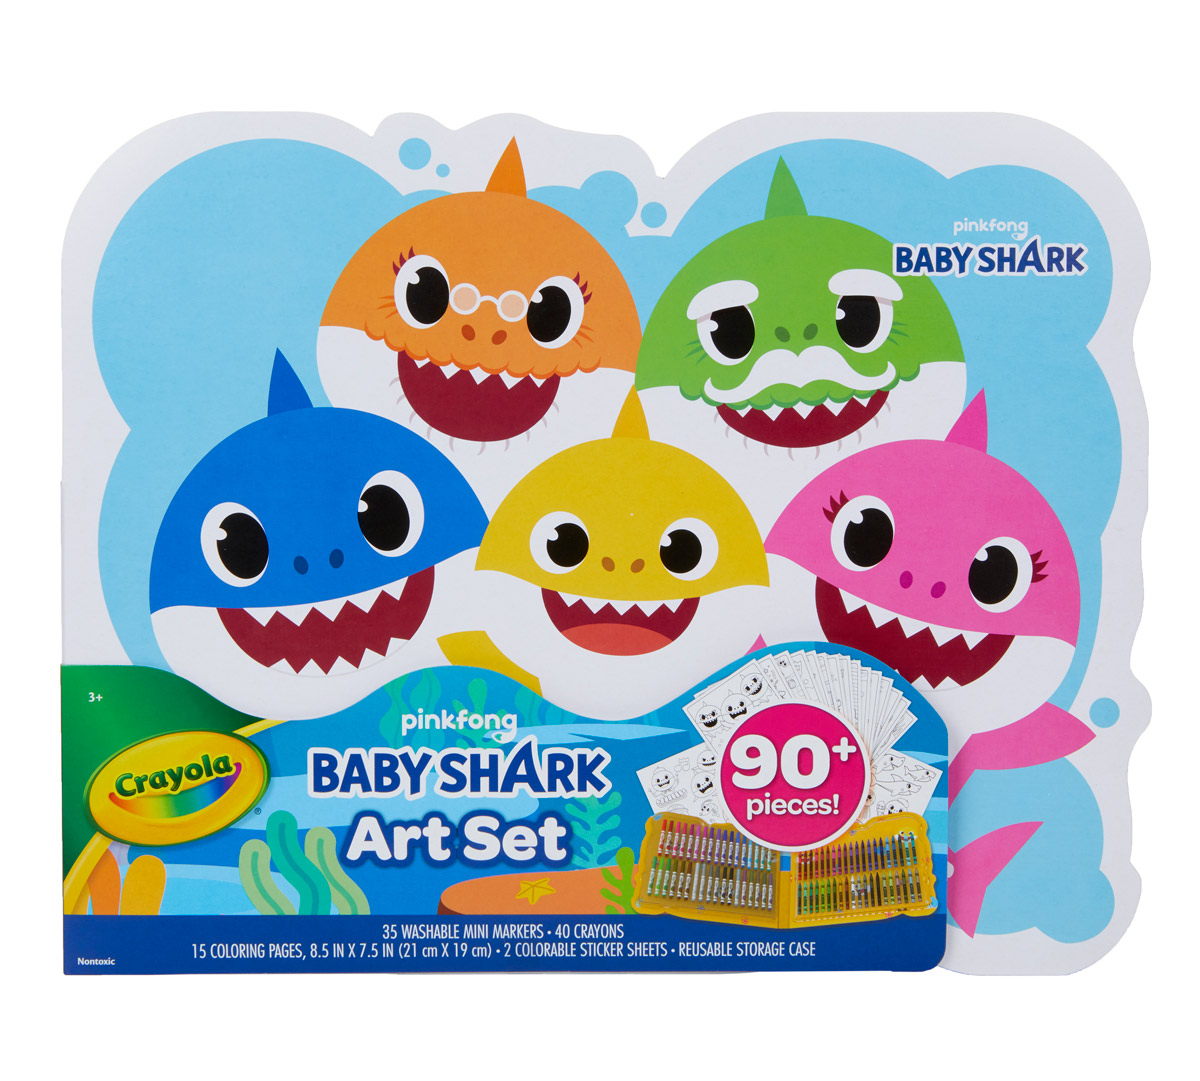 Baby Shark Art Set, Art Gift for Kids | Crayola.com | Crayola